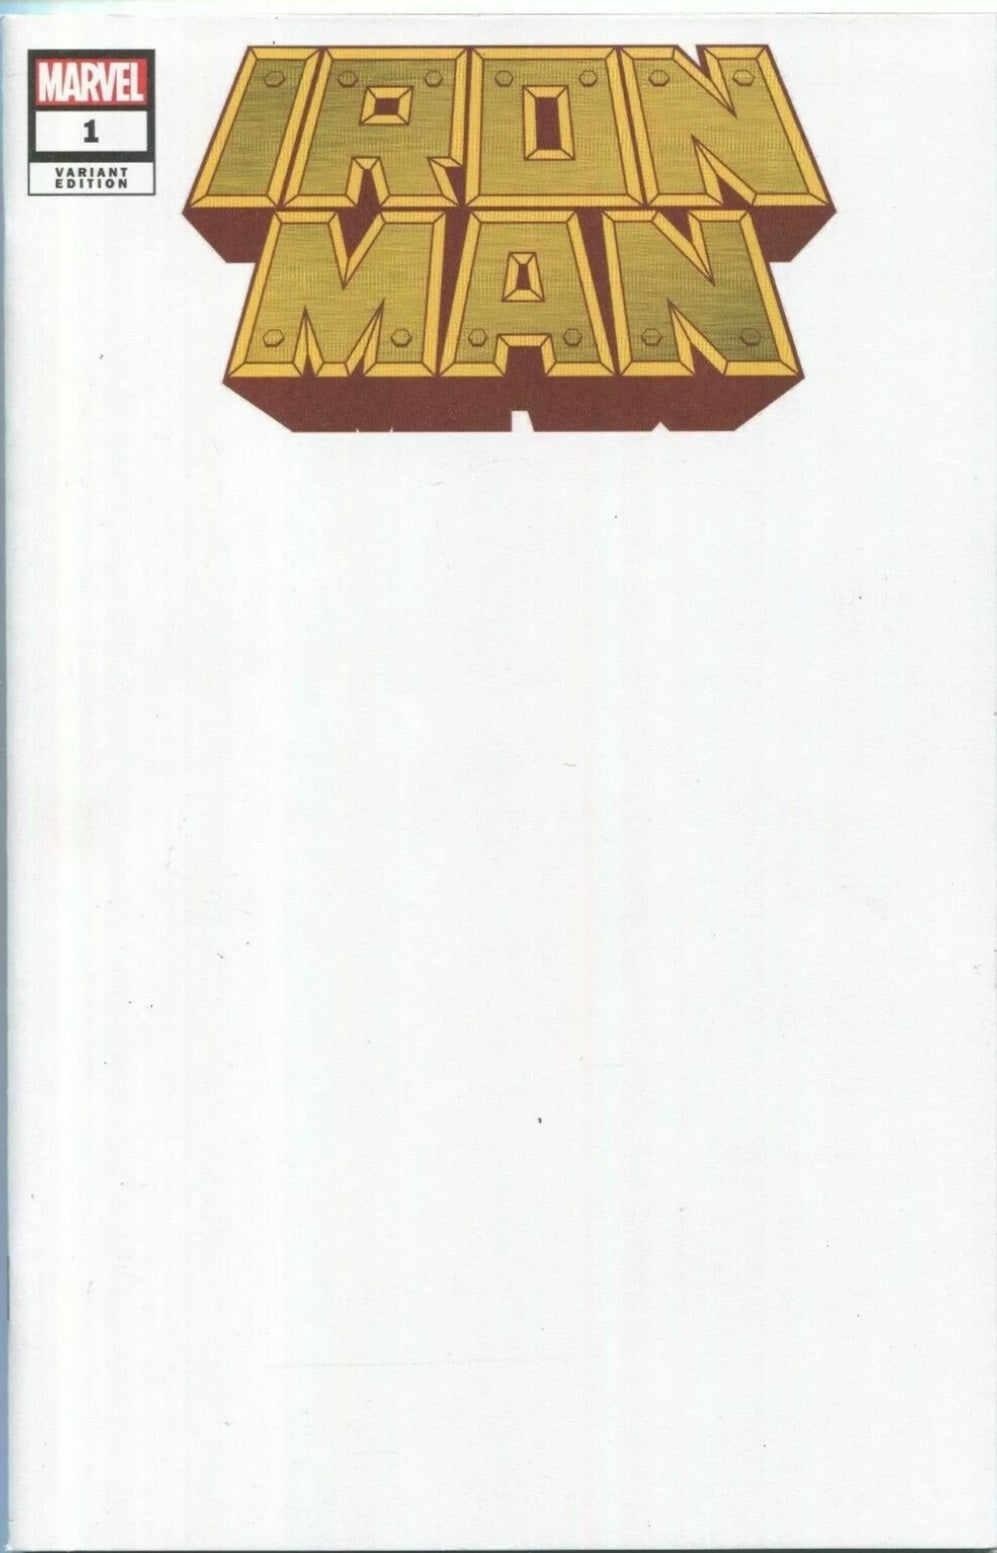 IRON MAN #1 BLANK VARIANT SKETCH